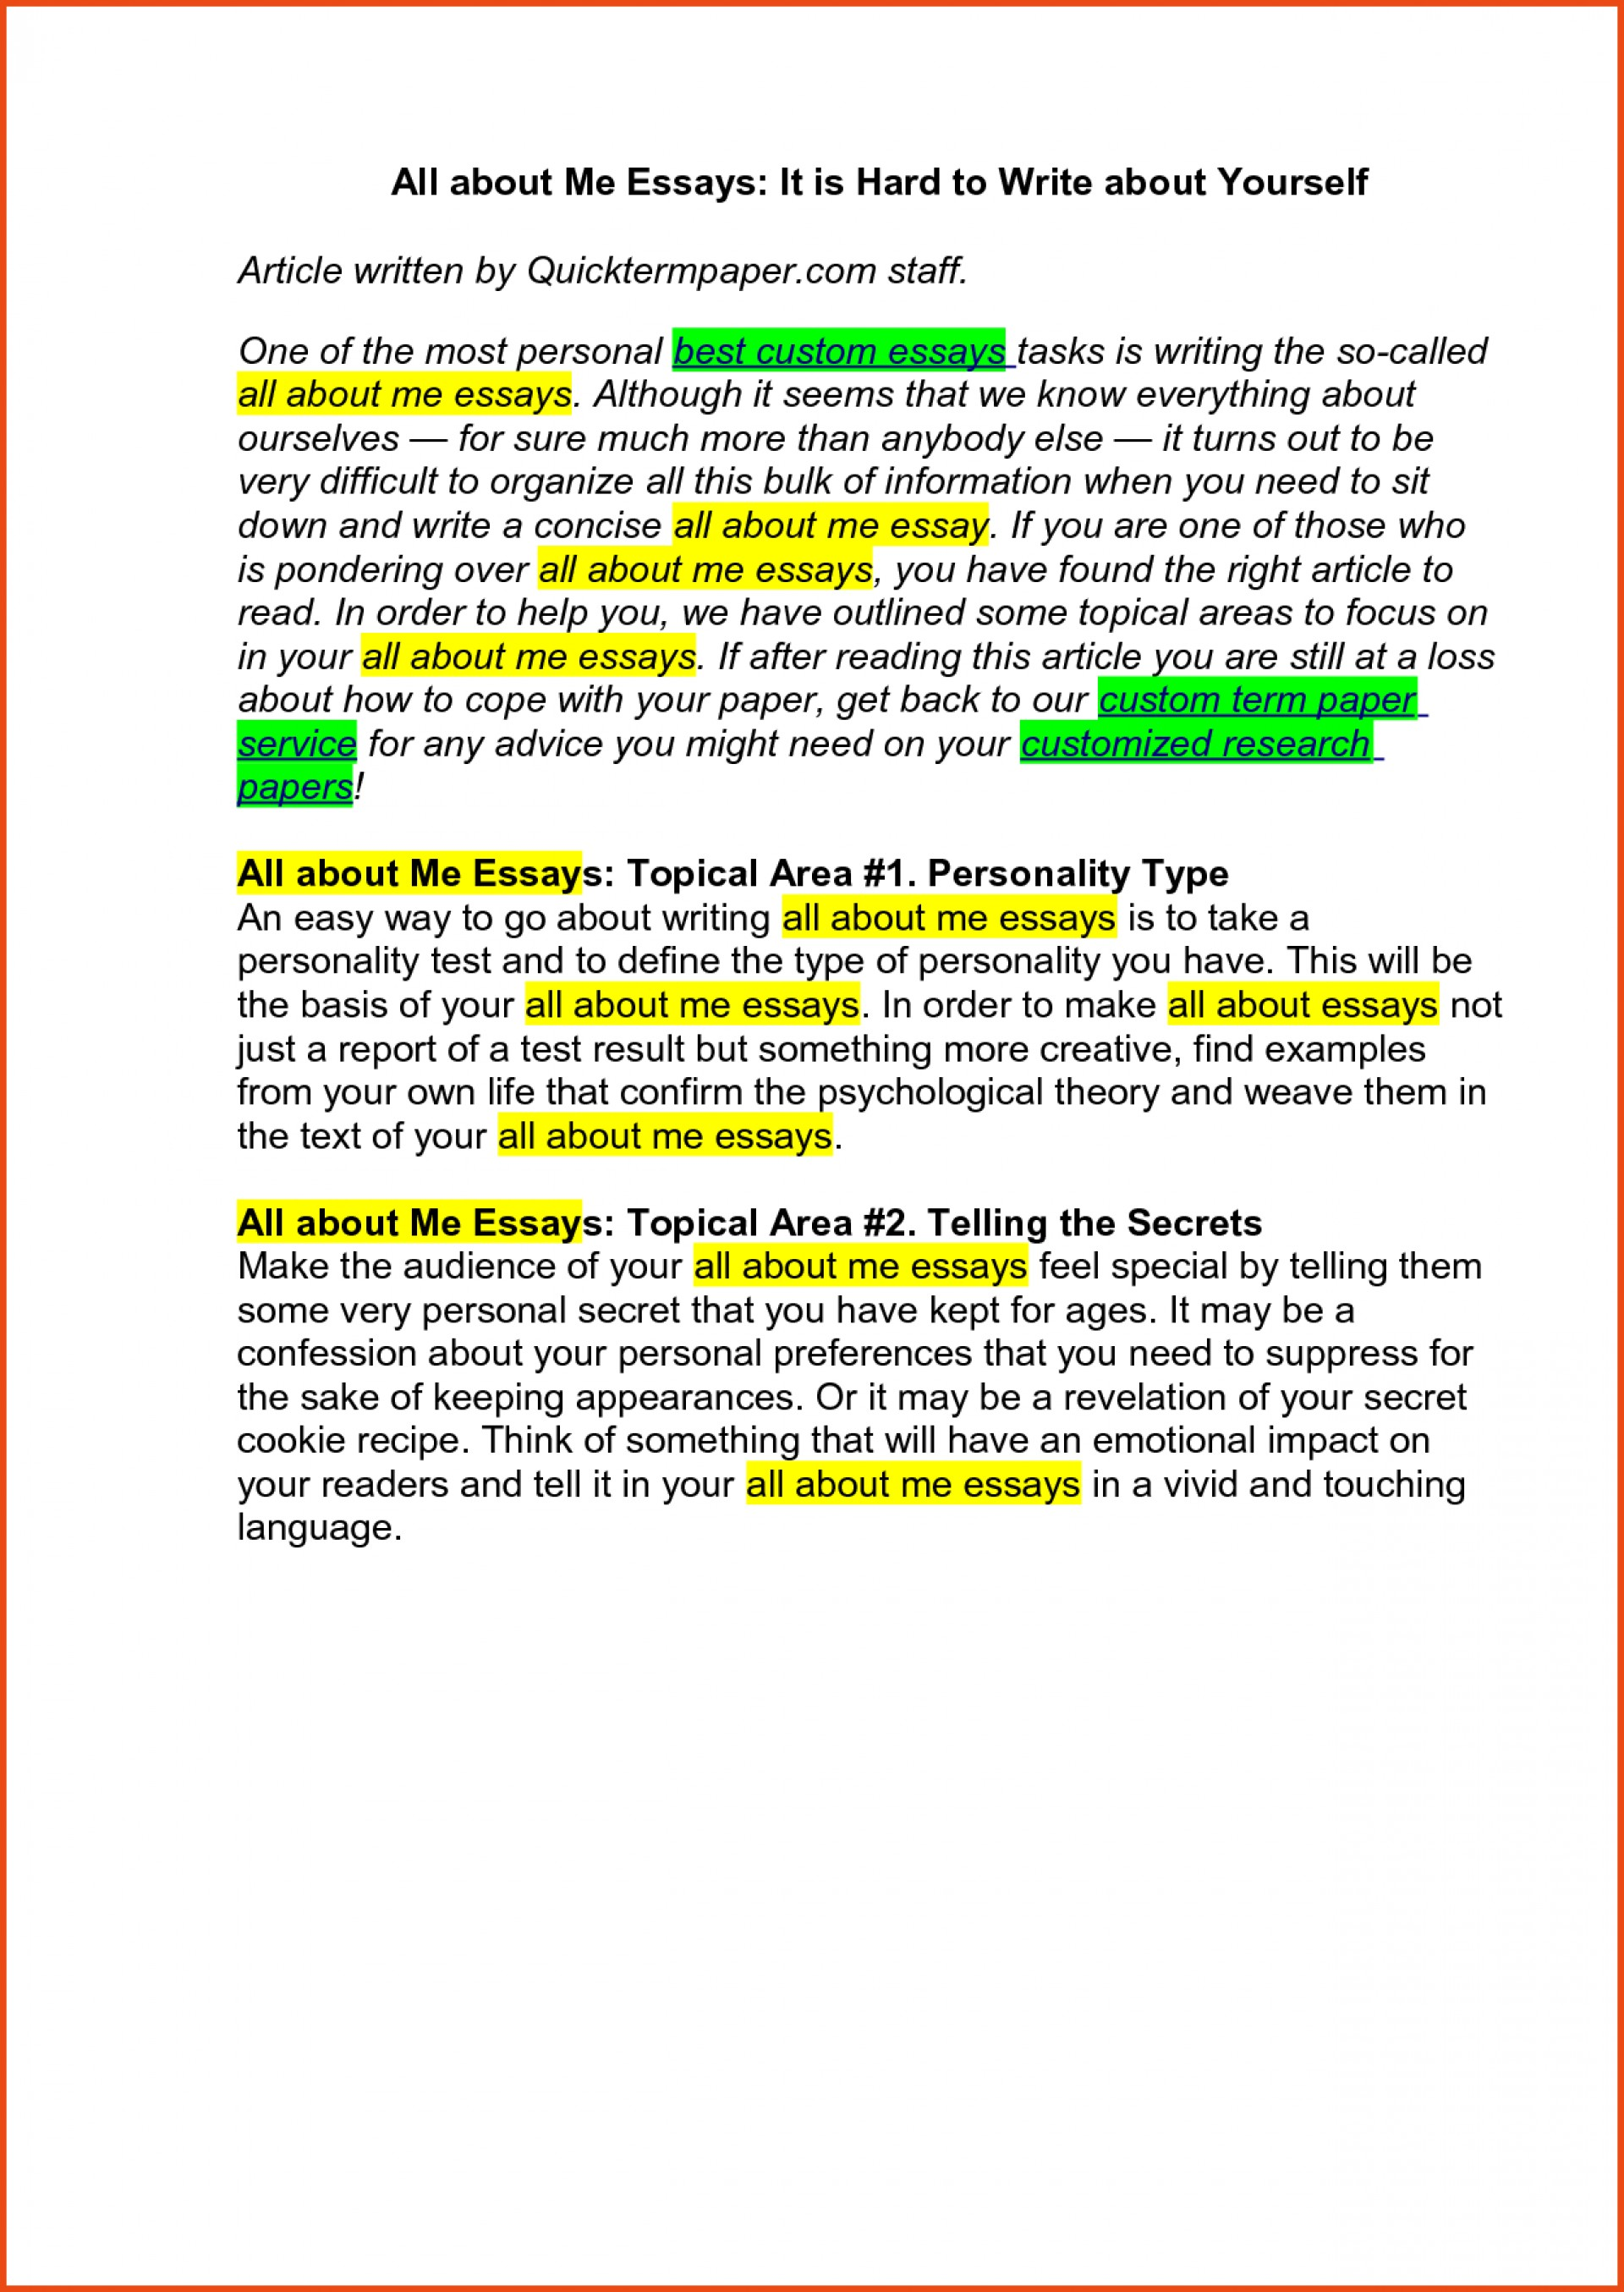 010 Sample College Admissions Essay Good Mba Essays School Application How To Start Your Confortable Resume About Yourselfs In Admis Write Off Strong App Steps Successful Formidable Yourself Example Of Autobiography Tagalog A Narrative Examples Introduction 1920